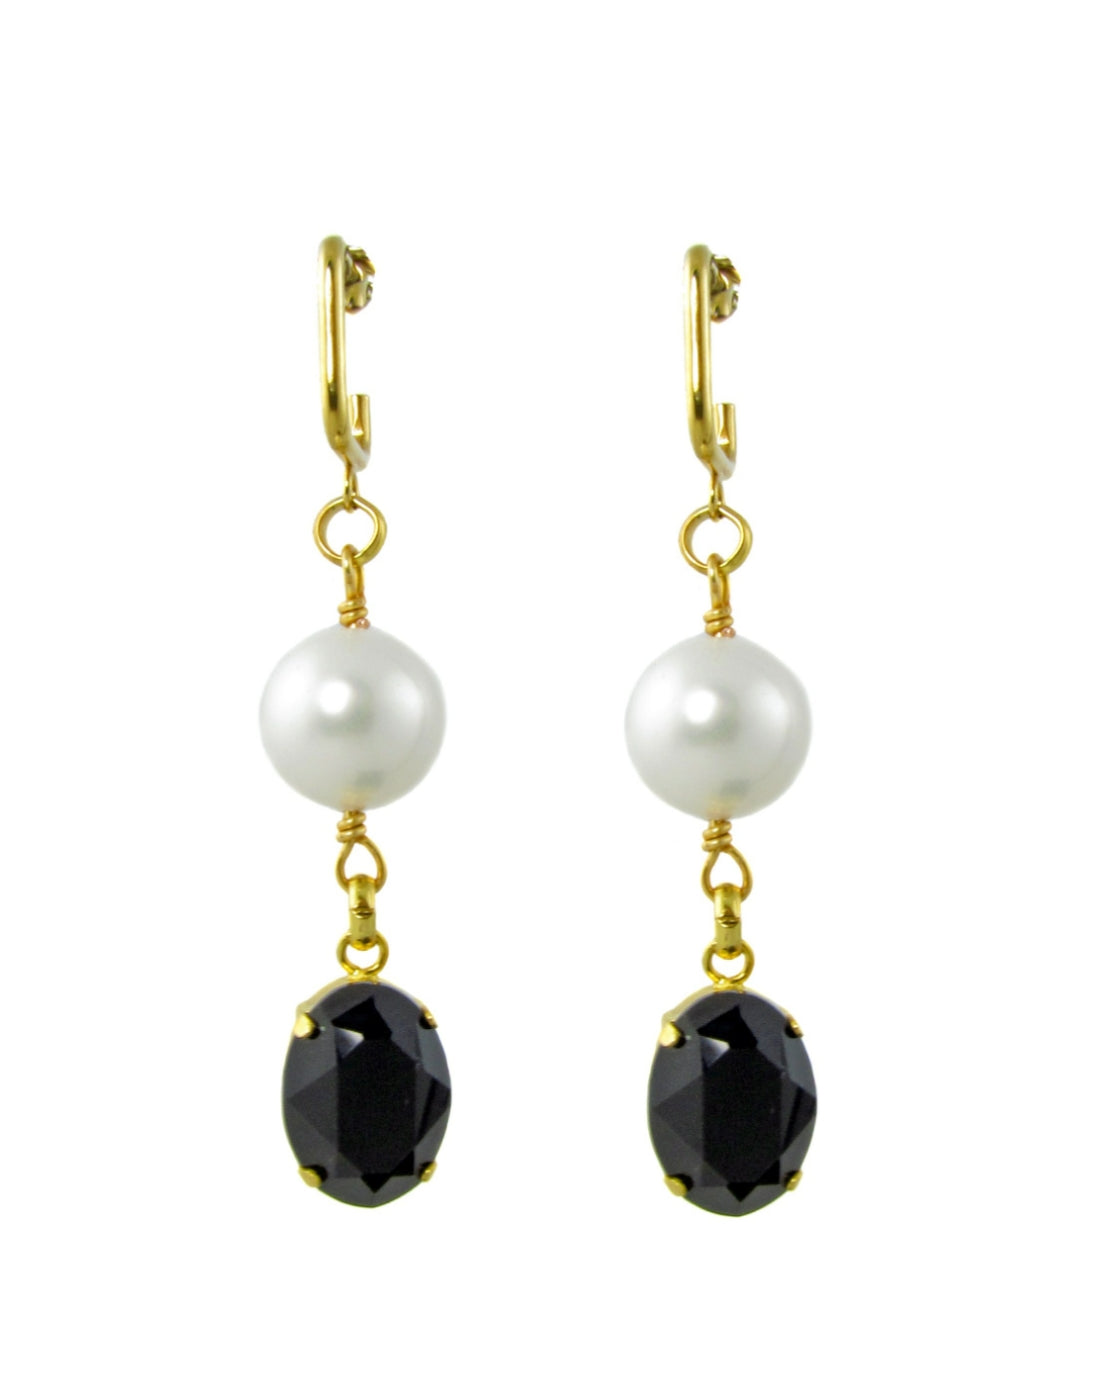 NONI -White pearl and Black swarovski stone drop Earrings - MARIA MOSS